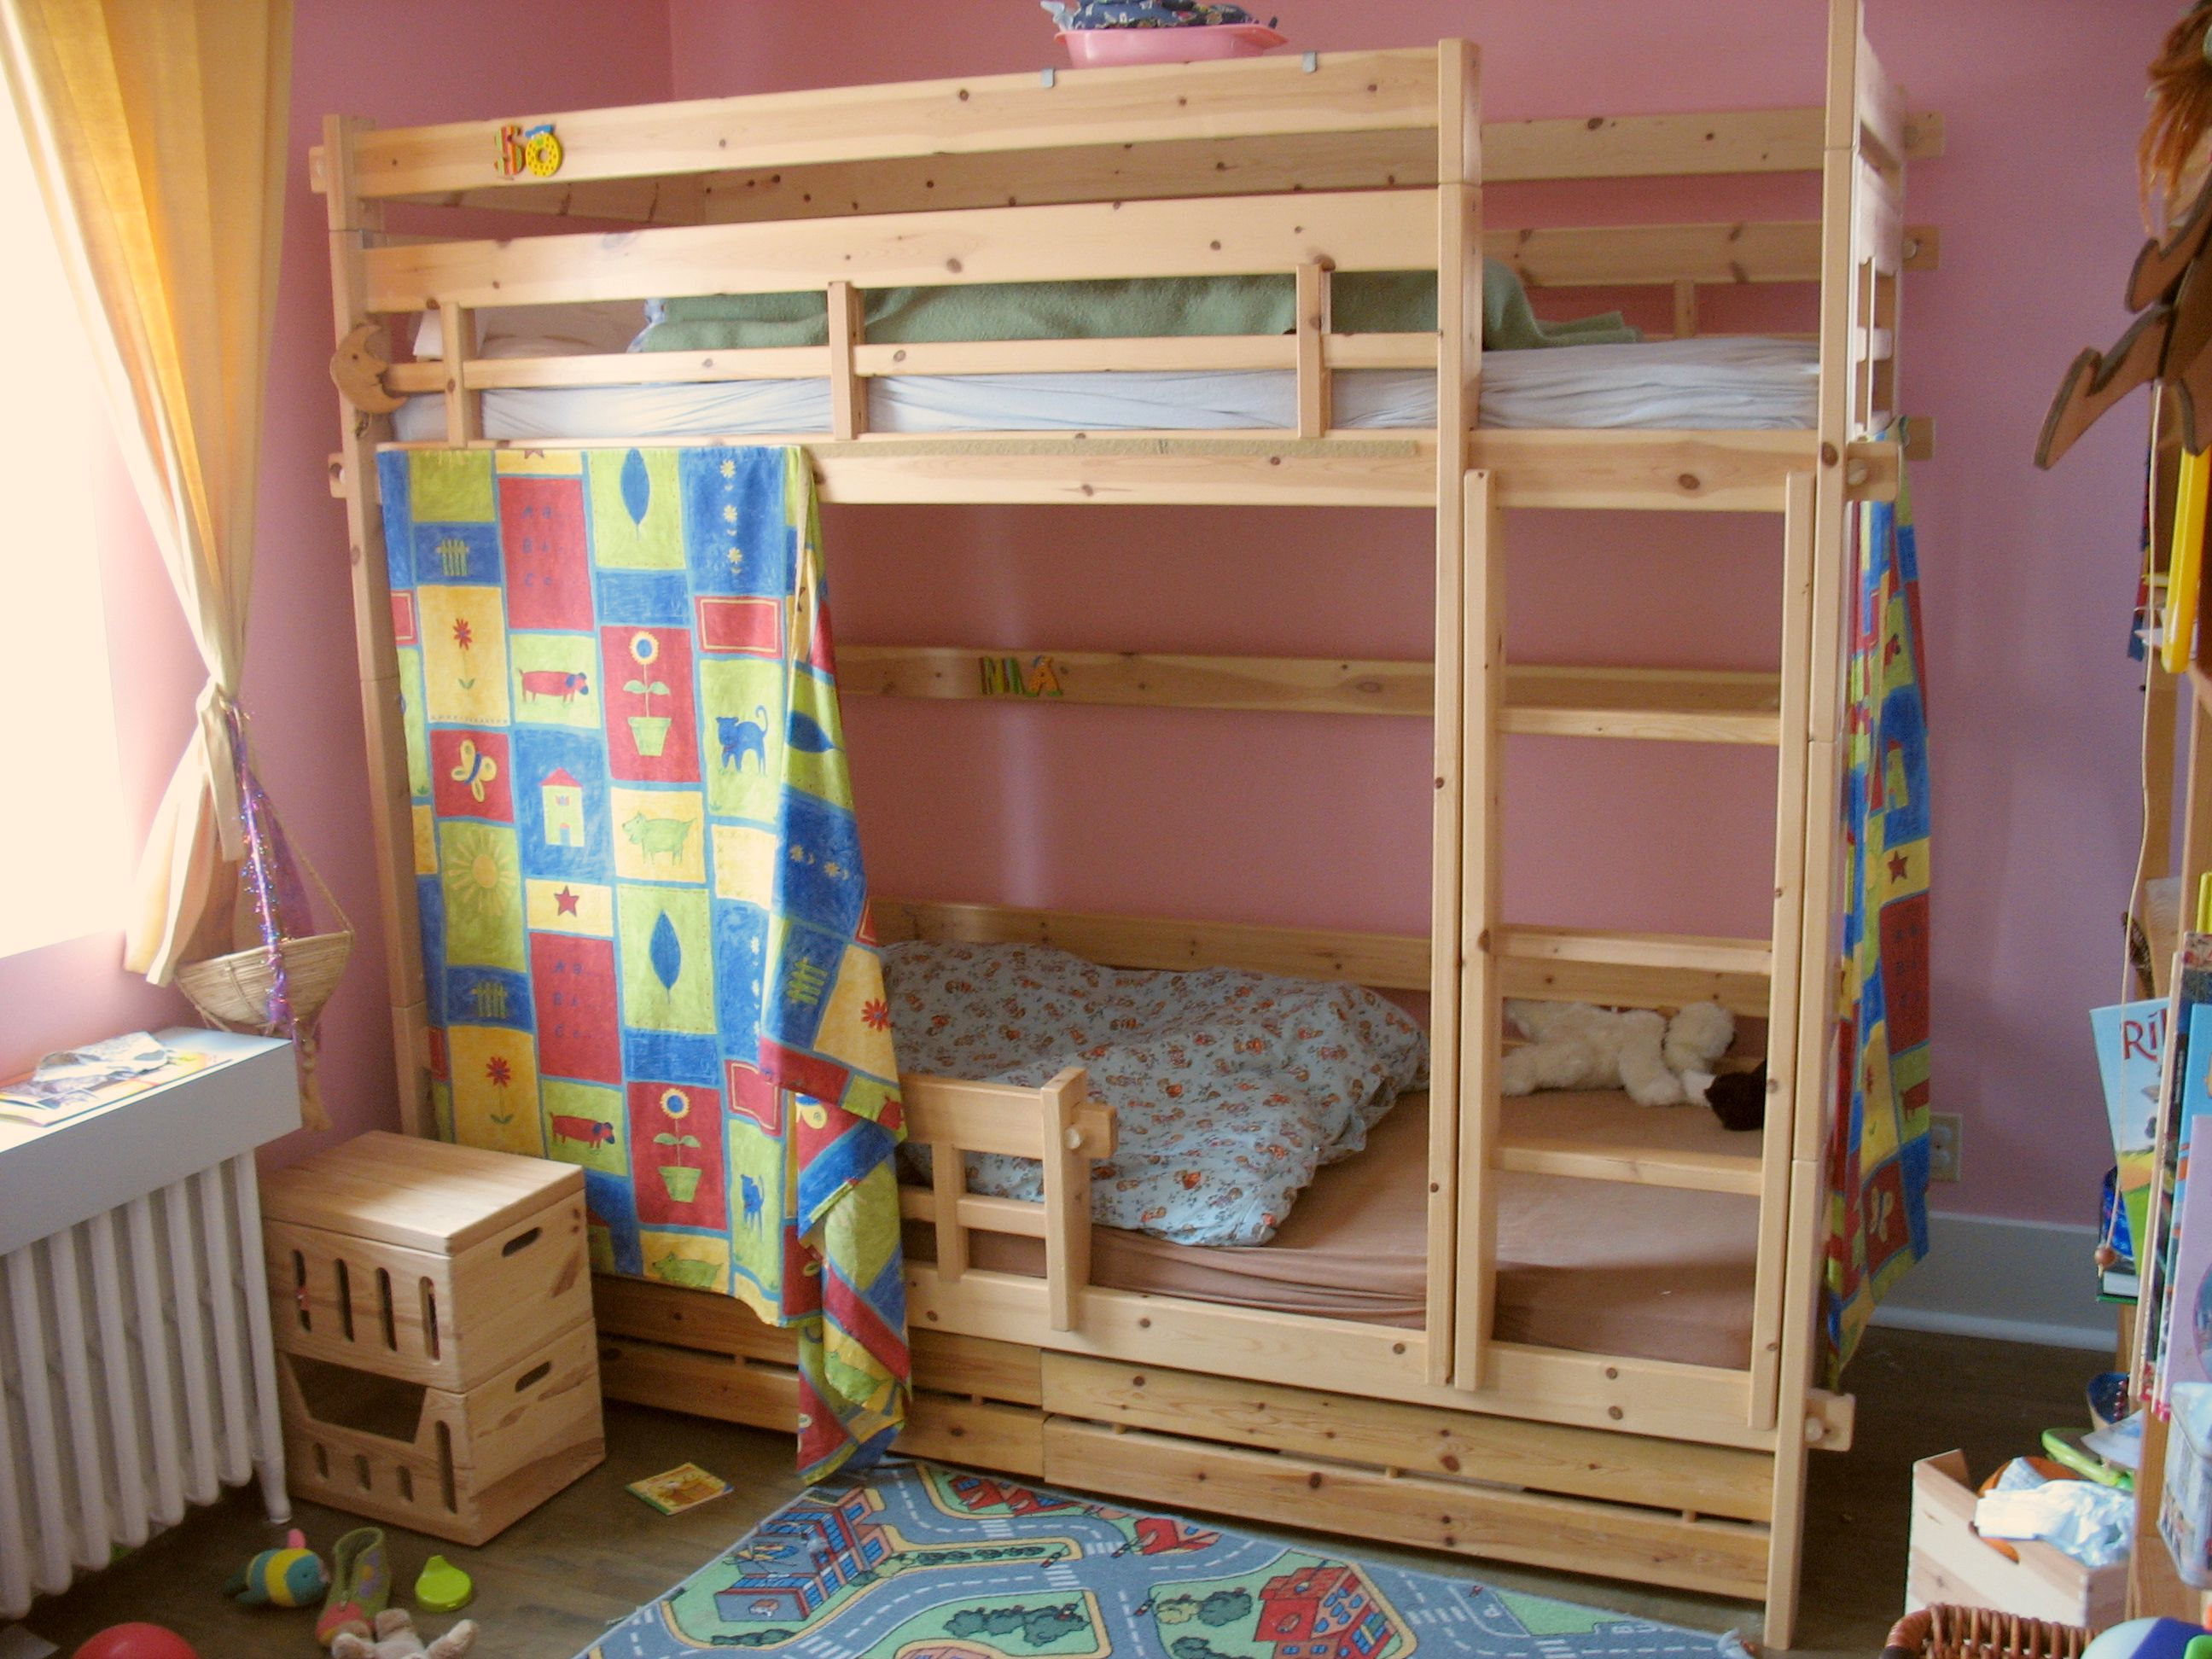 File:Bunk bed.jpg - Wikimedia Commons